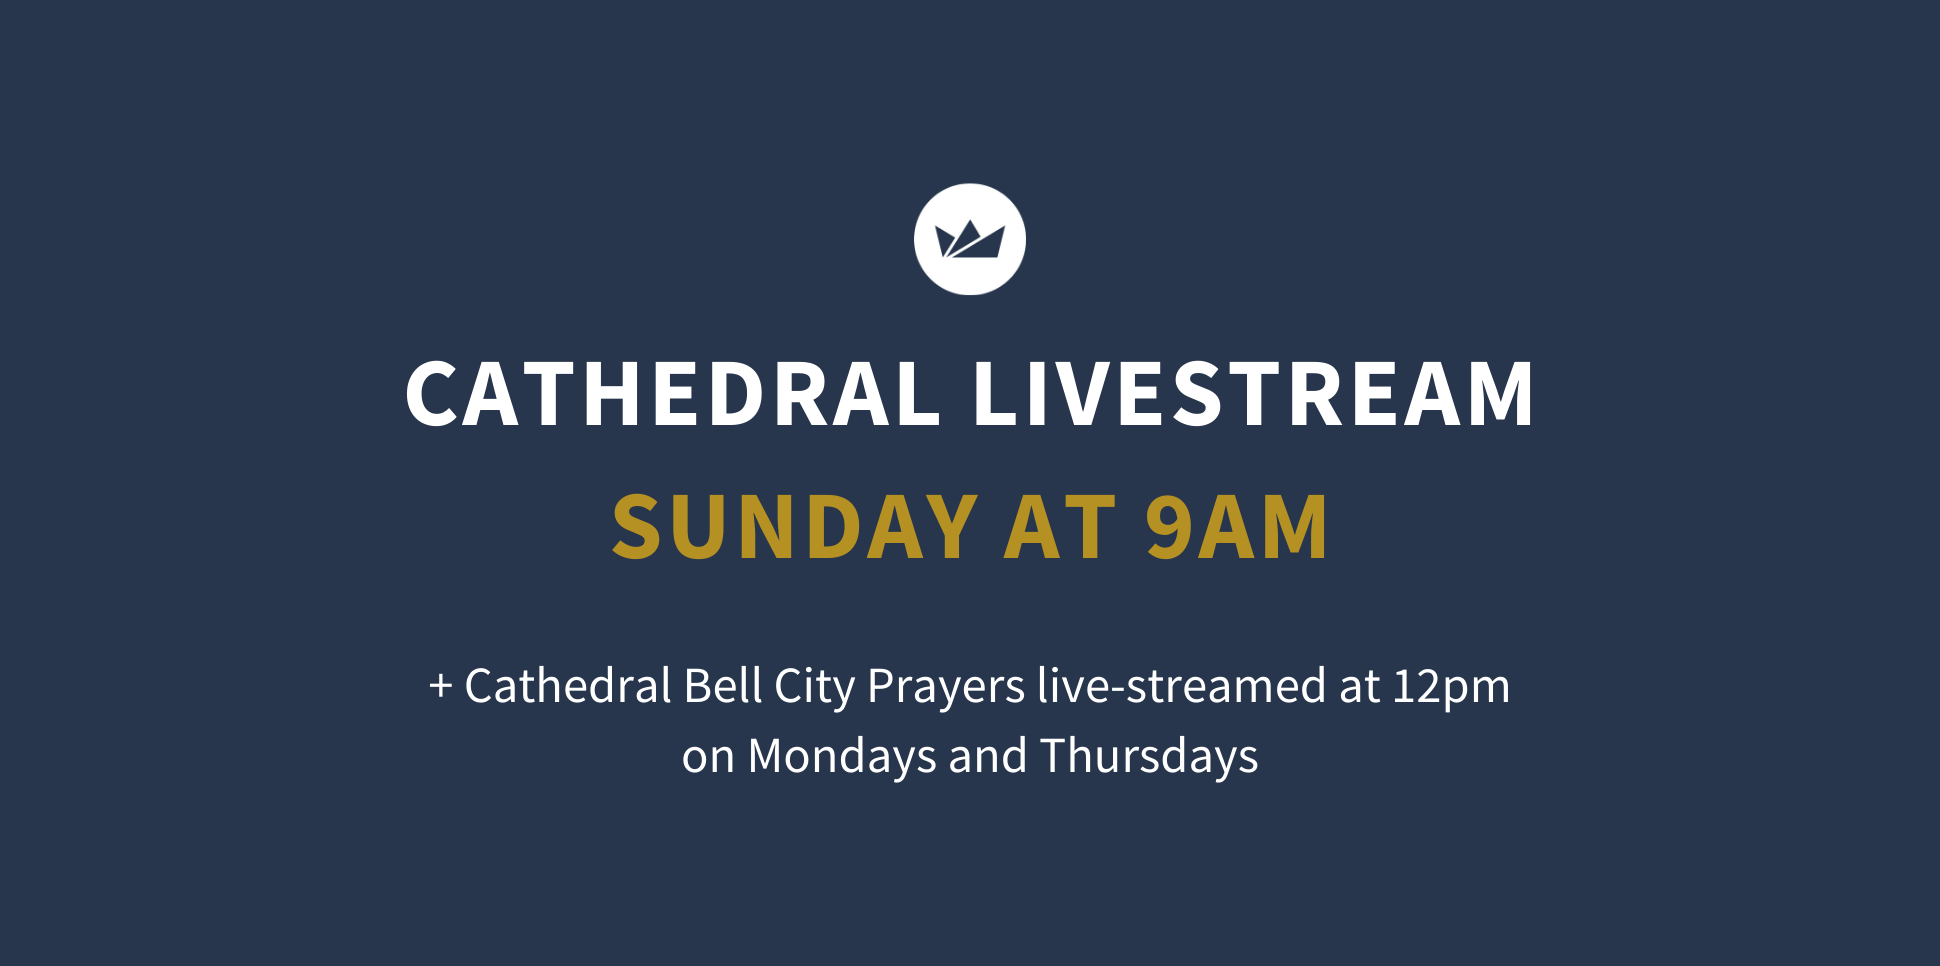 Online Church services cathedral livestream at St Michael's